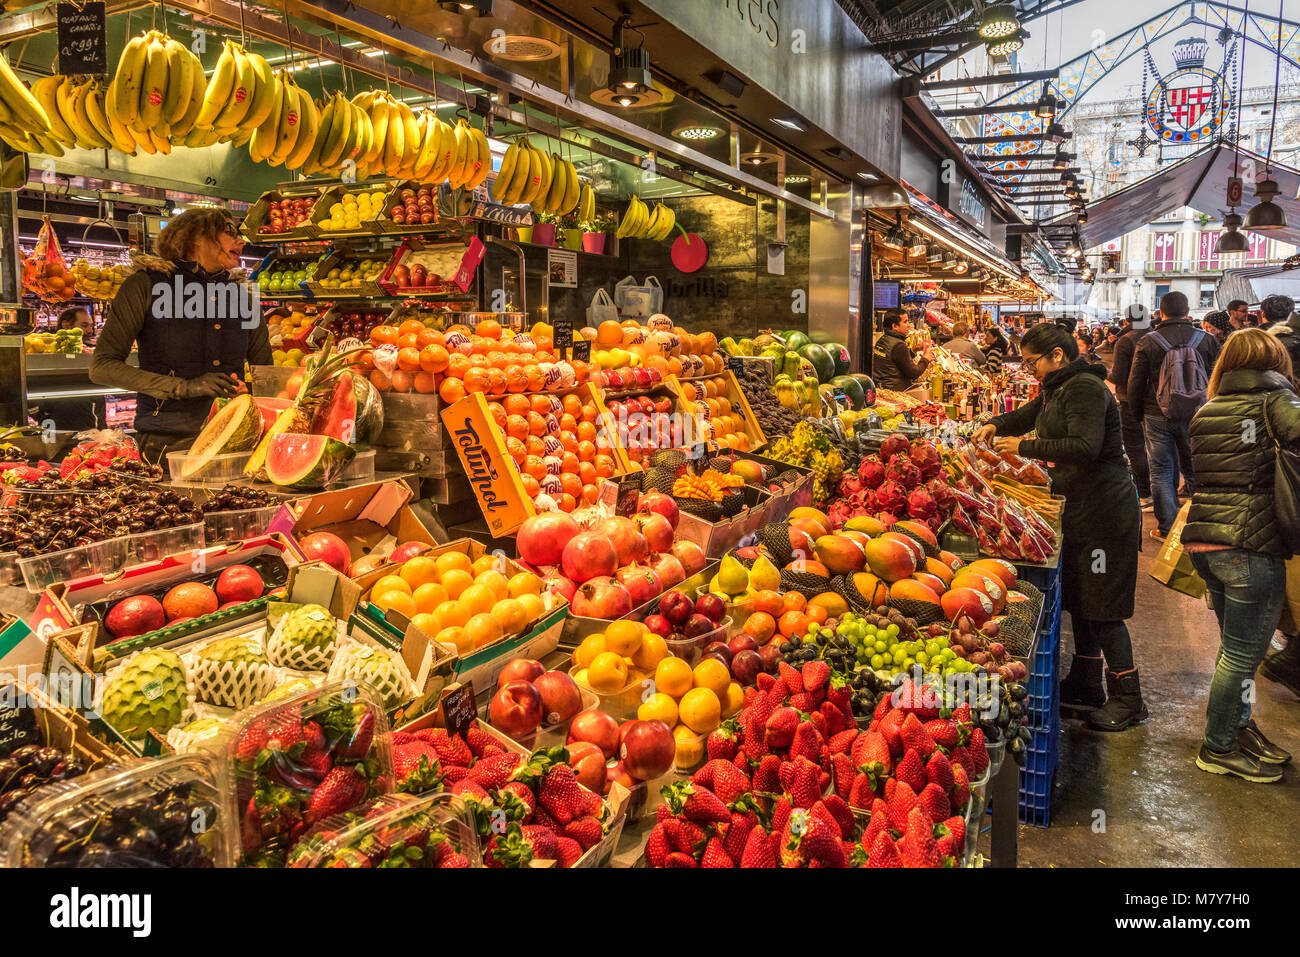 Fresh fruit and vegetable stall at Boqueria market, Barcelona, Catalonia, Spain - Stock Image